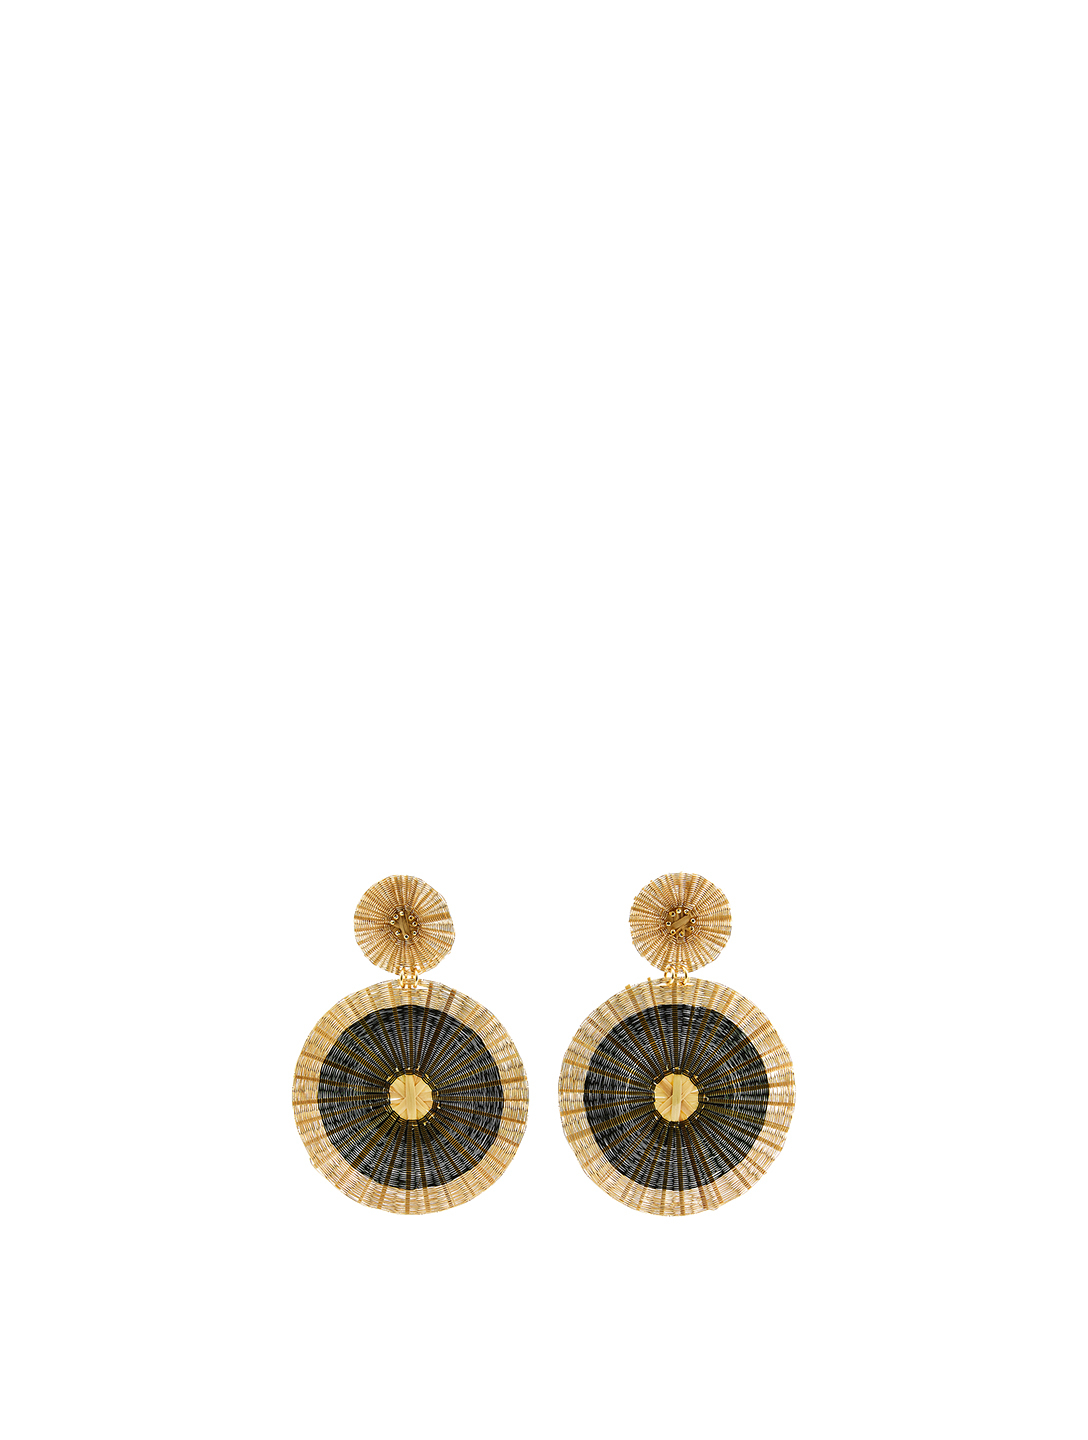 MERCEDES SALAZAR Suns Iraca Palm And Gold-Plated Bronze Drop Earrings H Project Metallic